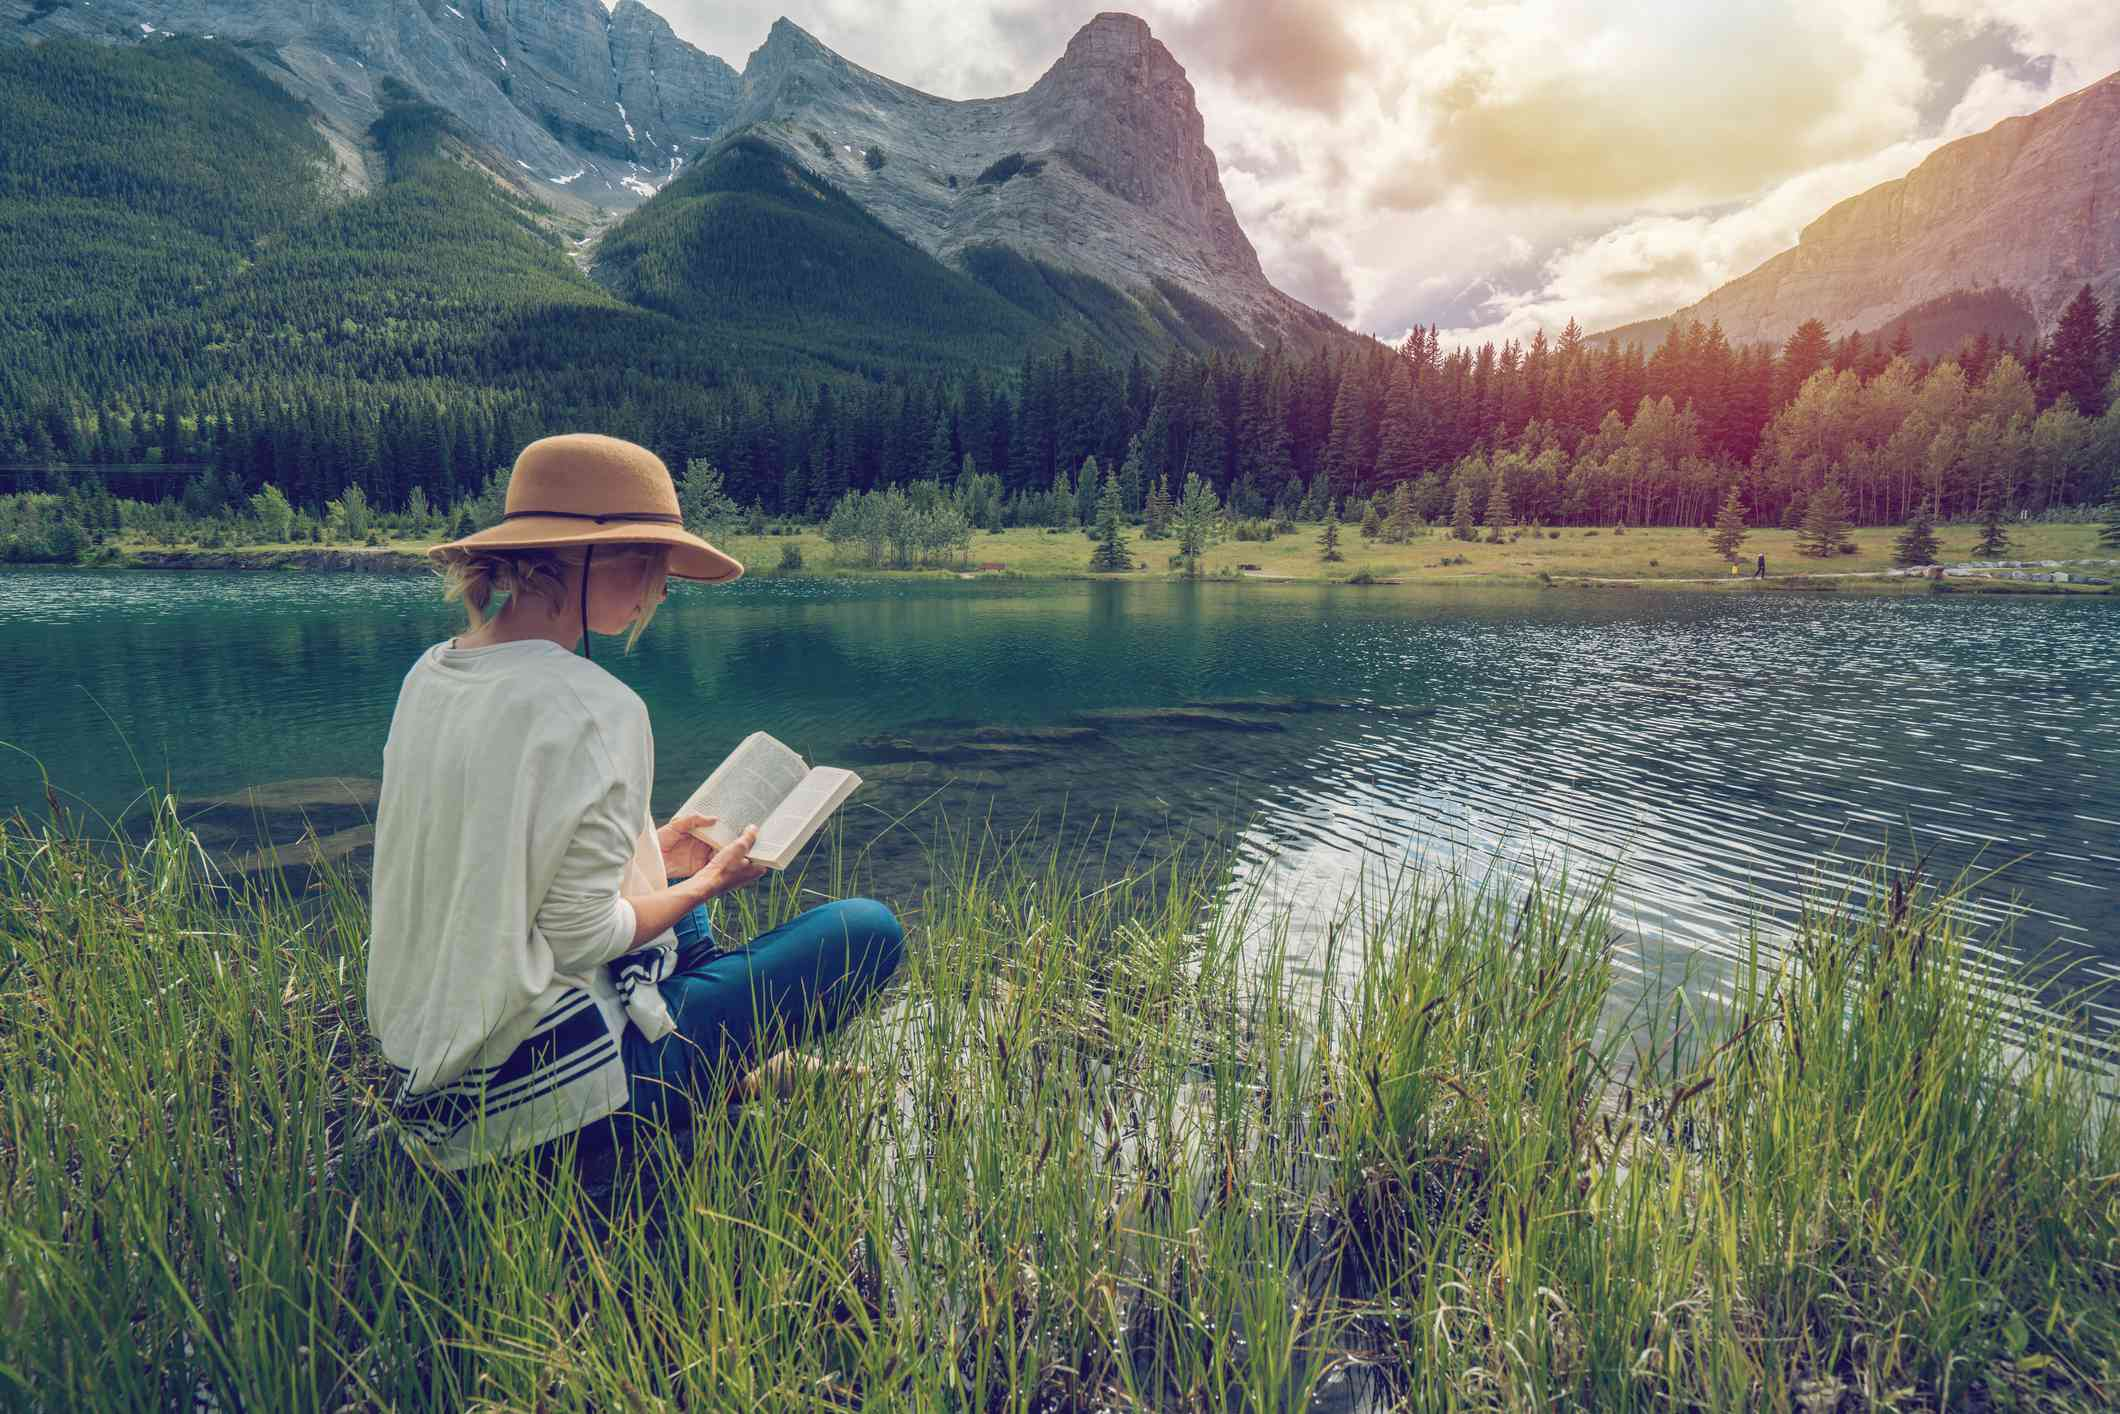 A woman reading a paperback by the lake with mountains in the background.